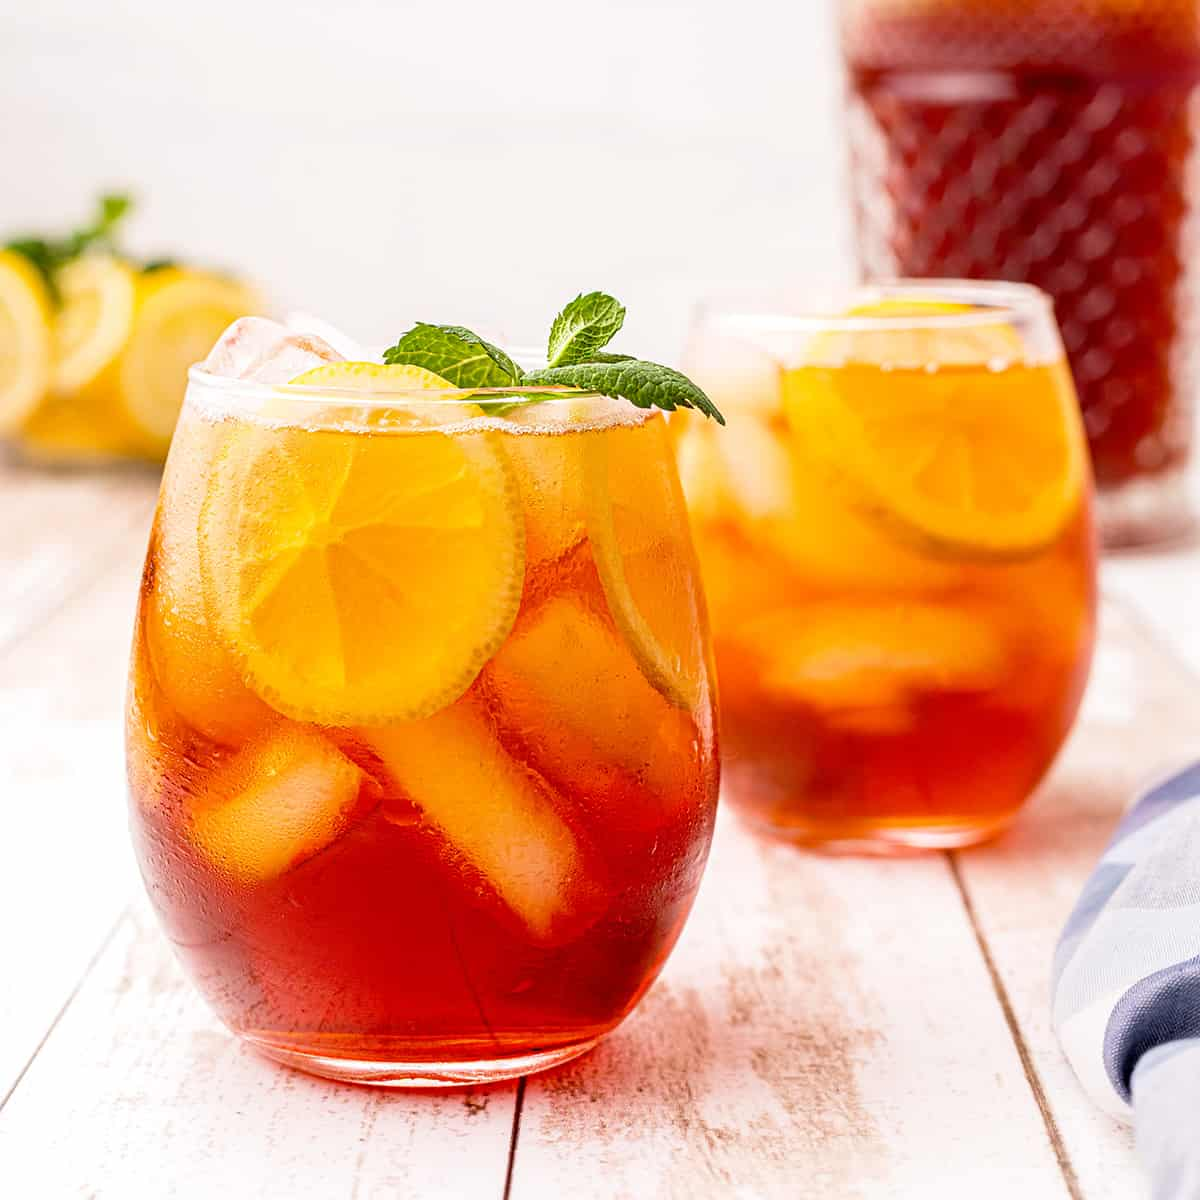 A glass of southern iced sweet tea with lemon and mint.